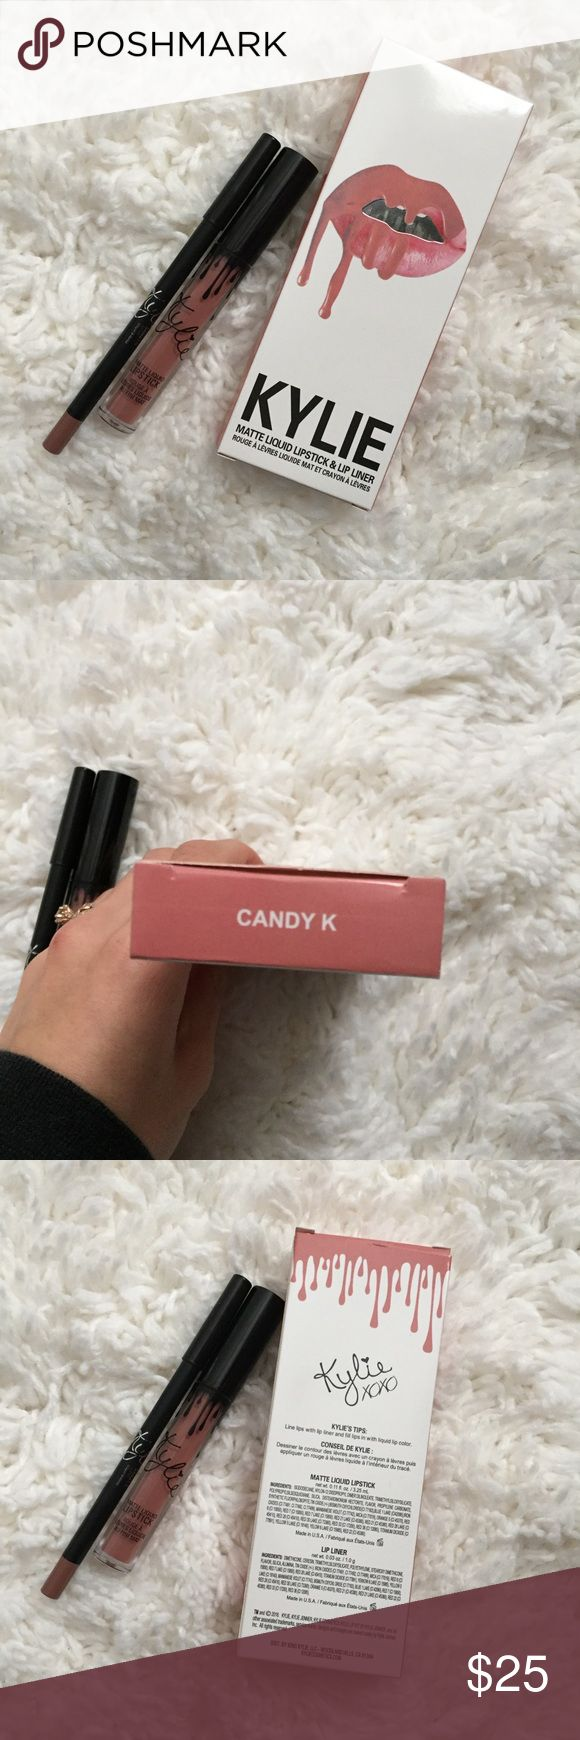 SALE! Kylie Cosmetics Candy K Lip Kit *Kylie Cosmetics Candy K Lip Kit* • Condition: NWT, I did test the color and it wasn't for me • Defects: none • Color: Candy K (pink nude) Unsure of authenticity. Smells like candy! The color is beautiful! Just not for me.  + Offers welcome! Bundle for more savings! :) Kylie Cosmetics Makeup Lip Balm & Gloss